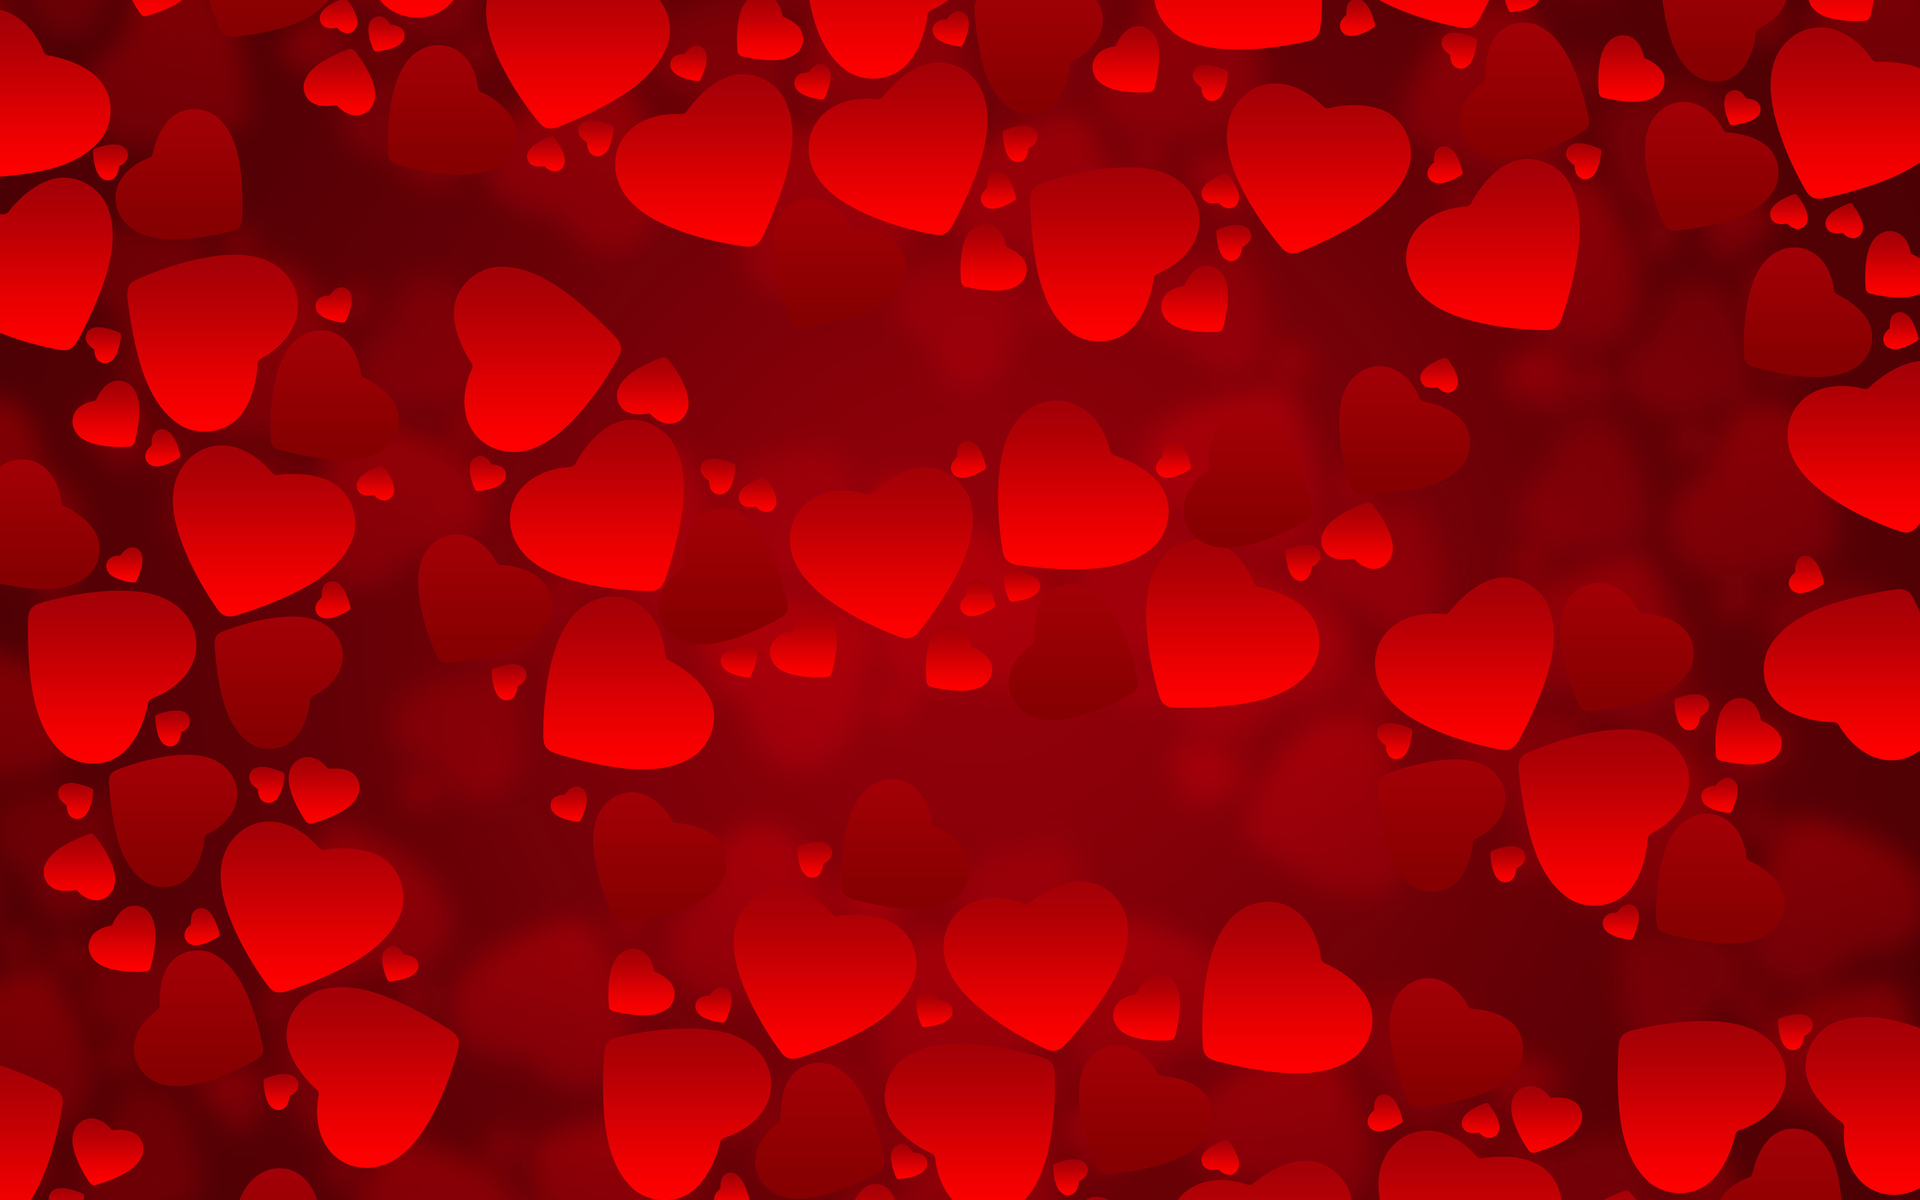 21 hd valentine's day wallpapers